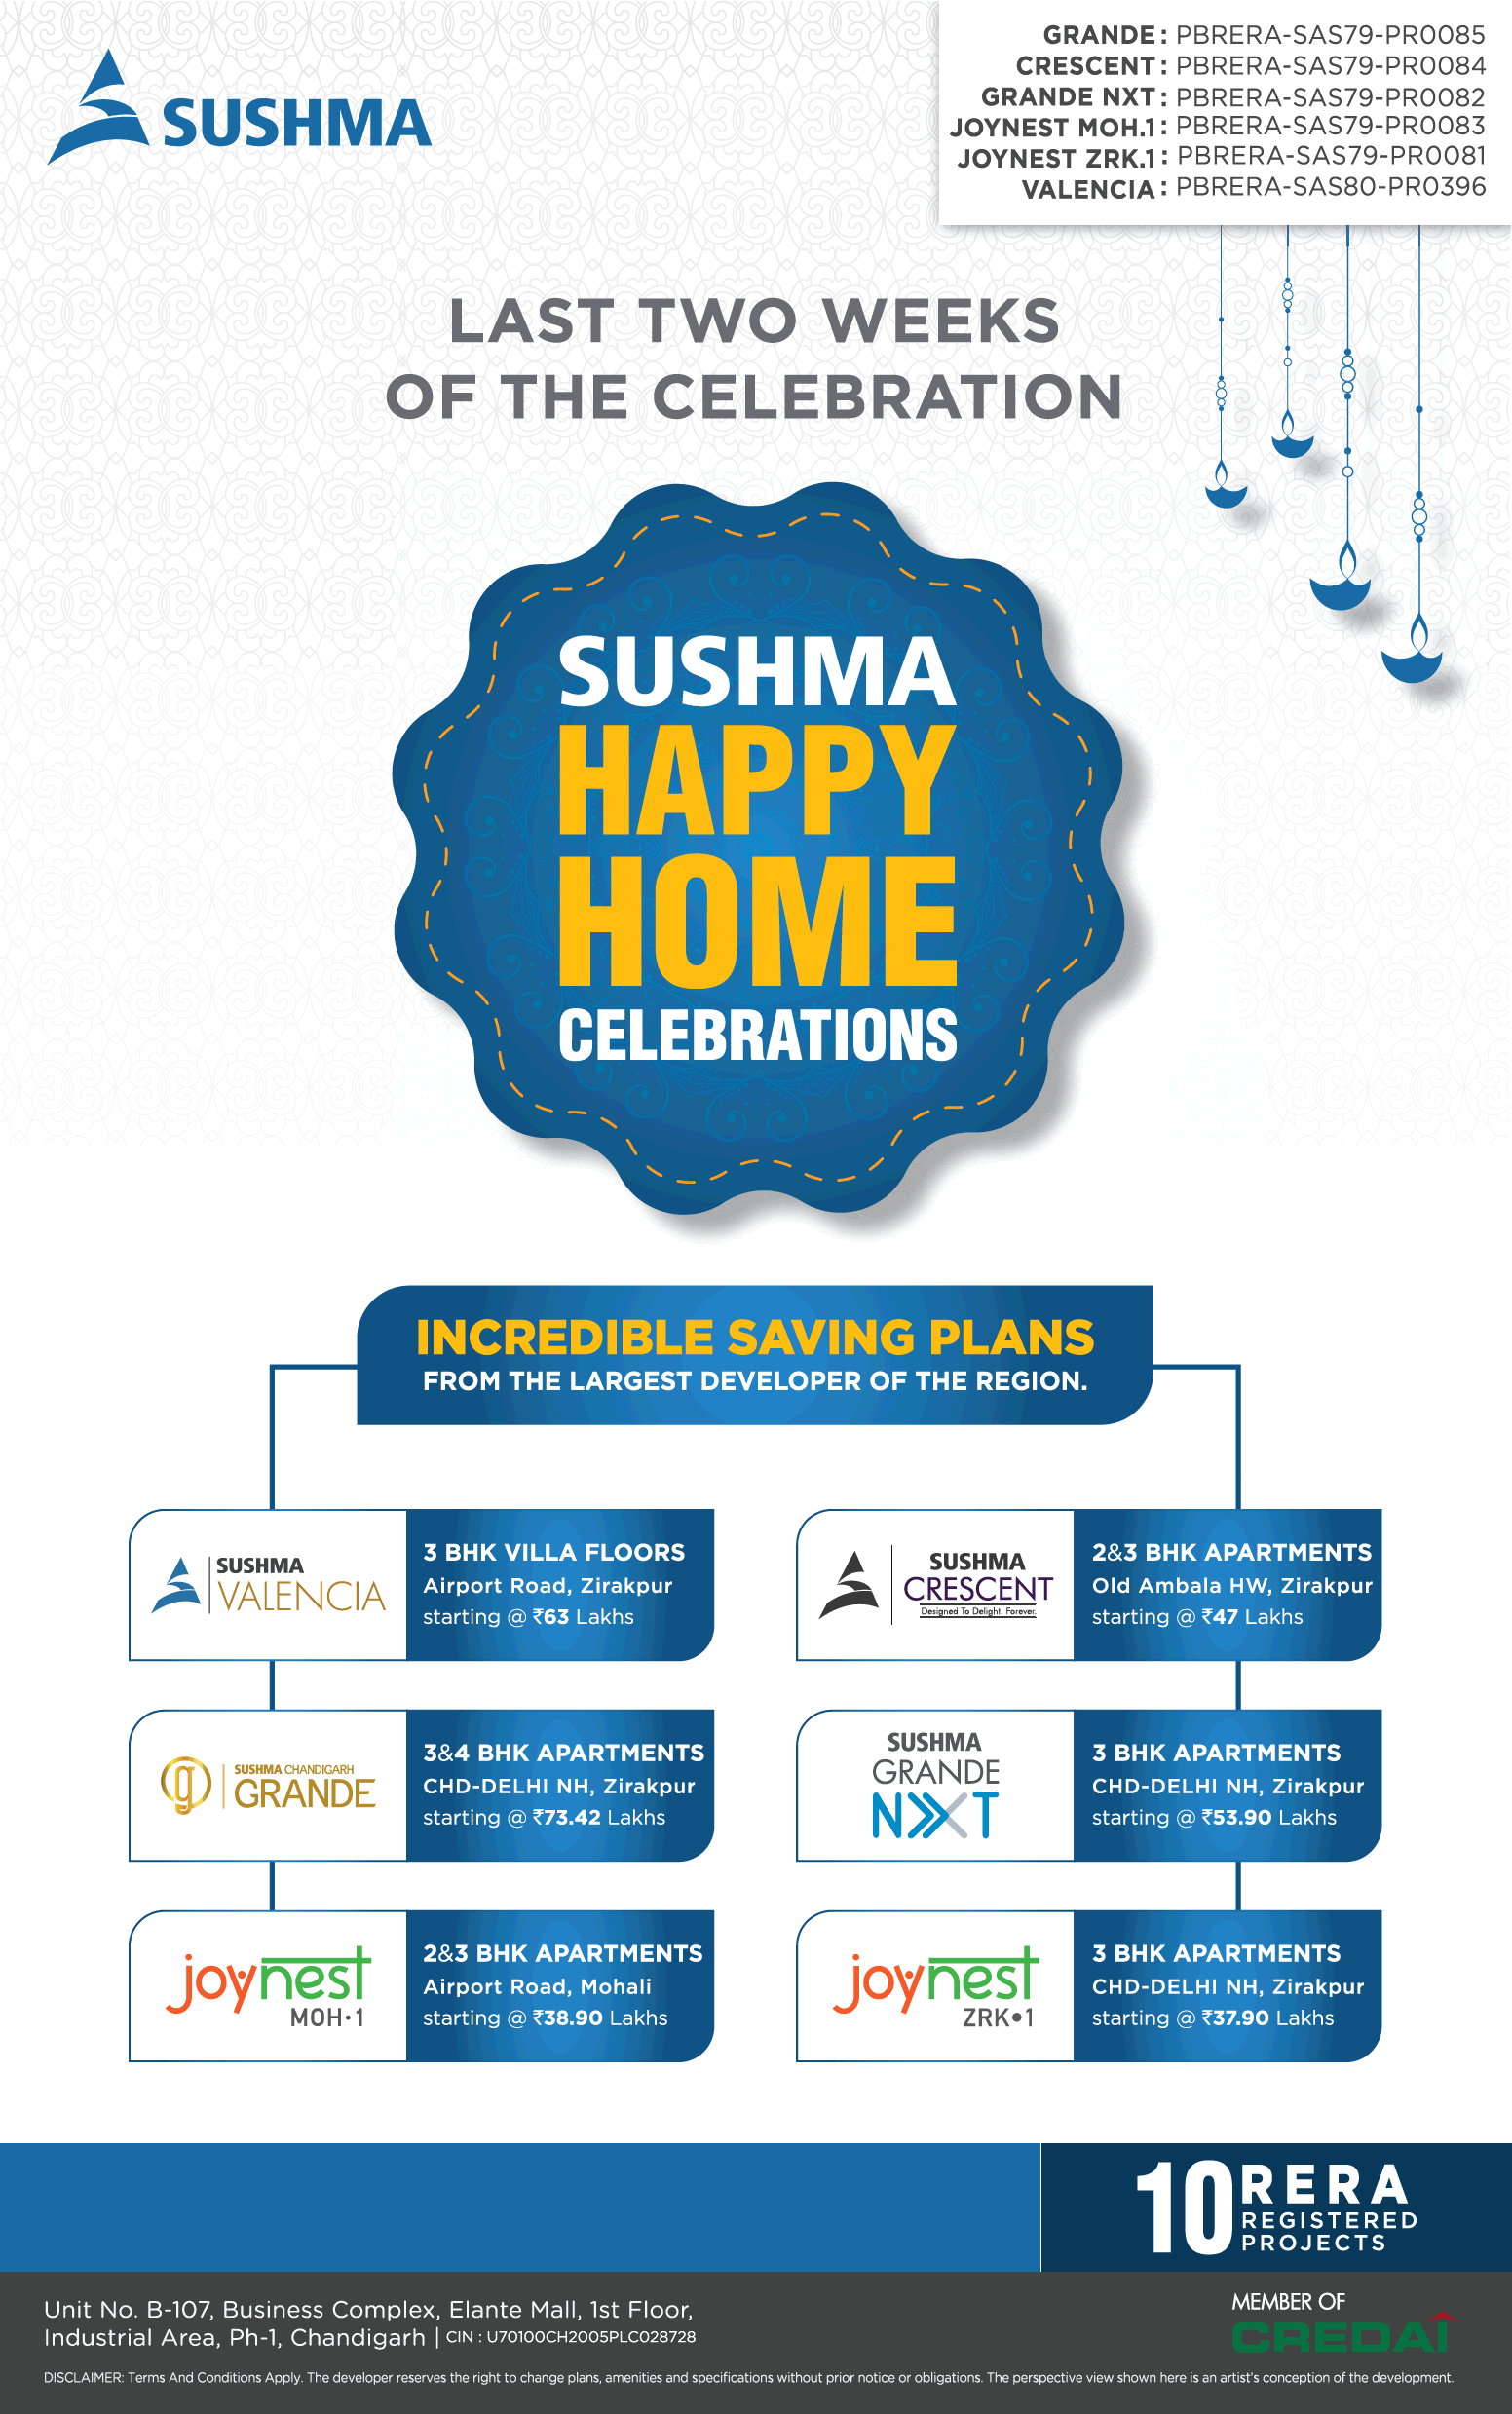 Last two weeks of the celebration at Sushma Buildtech Chandigarh